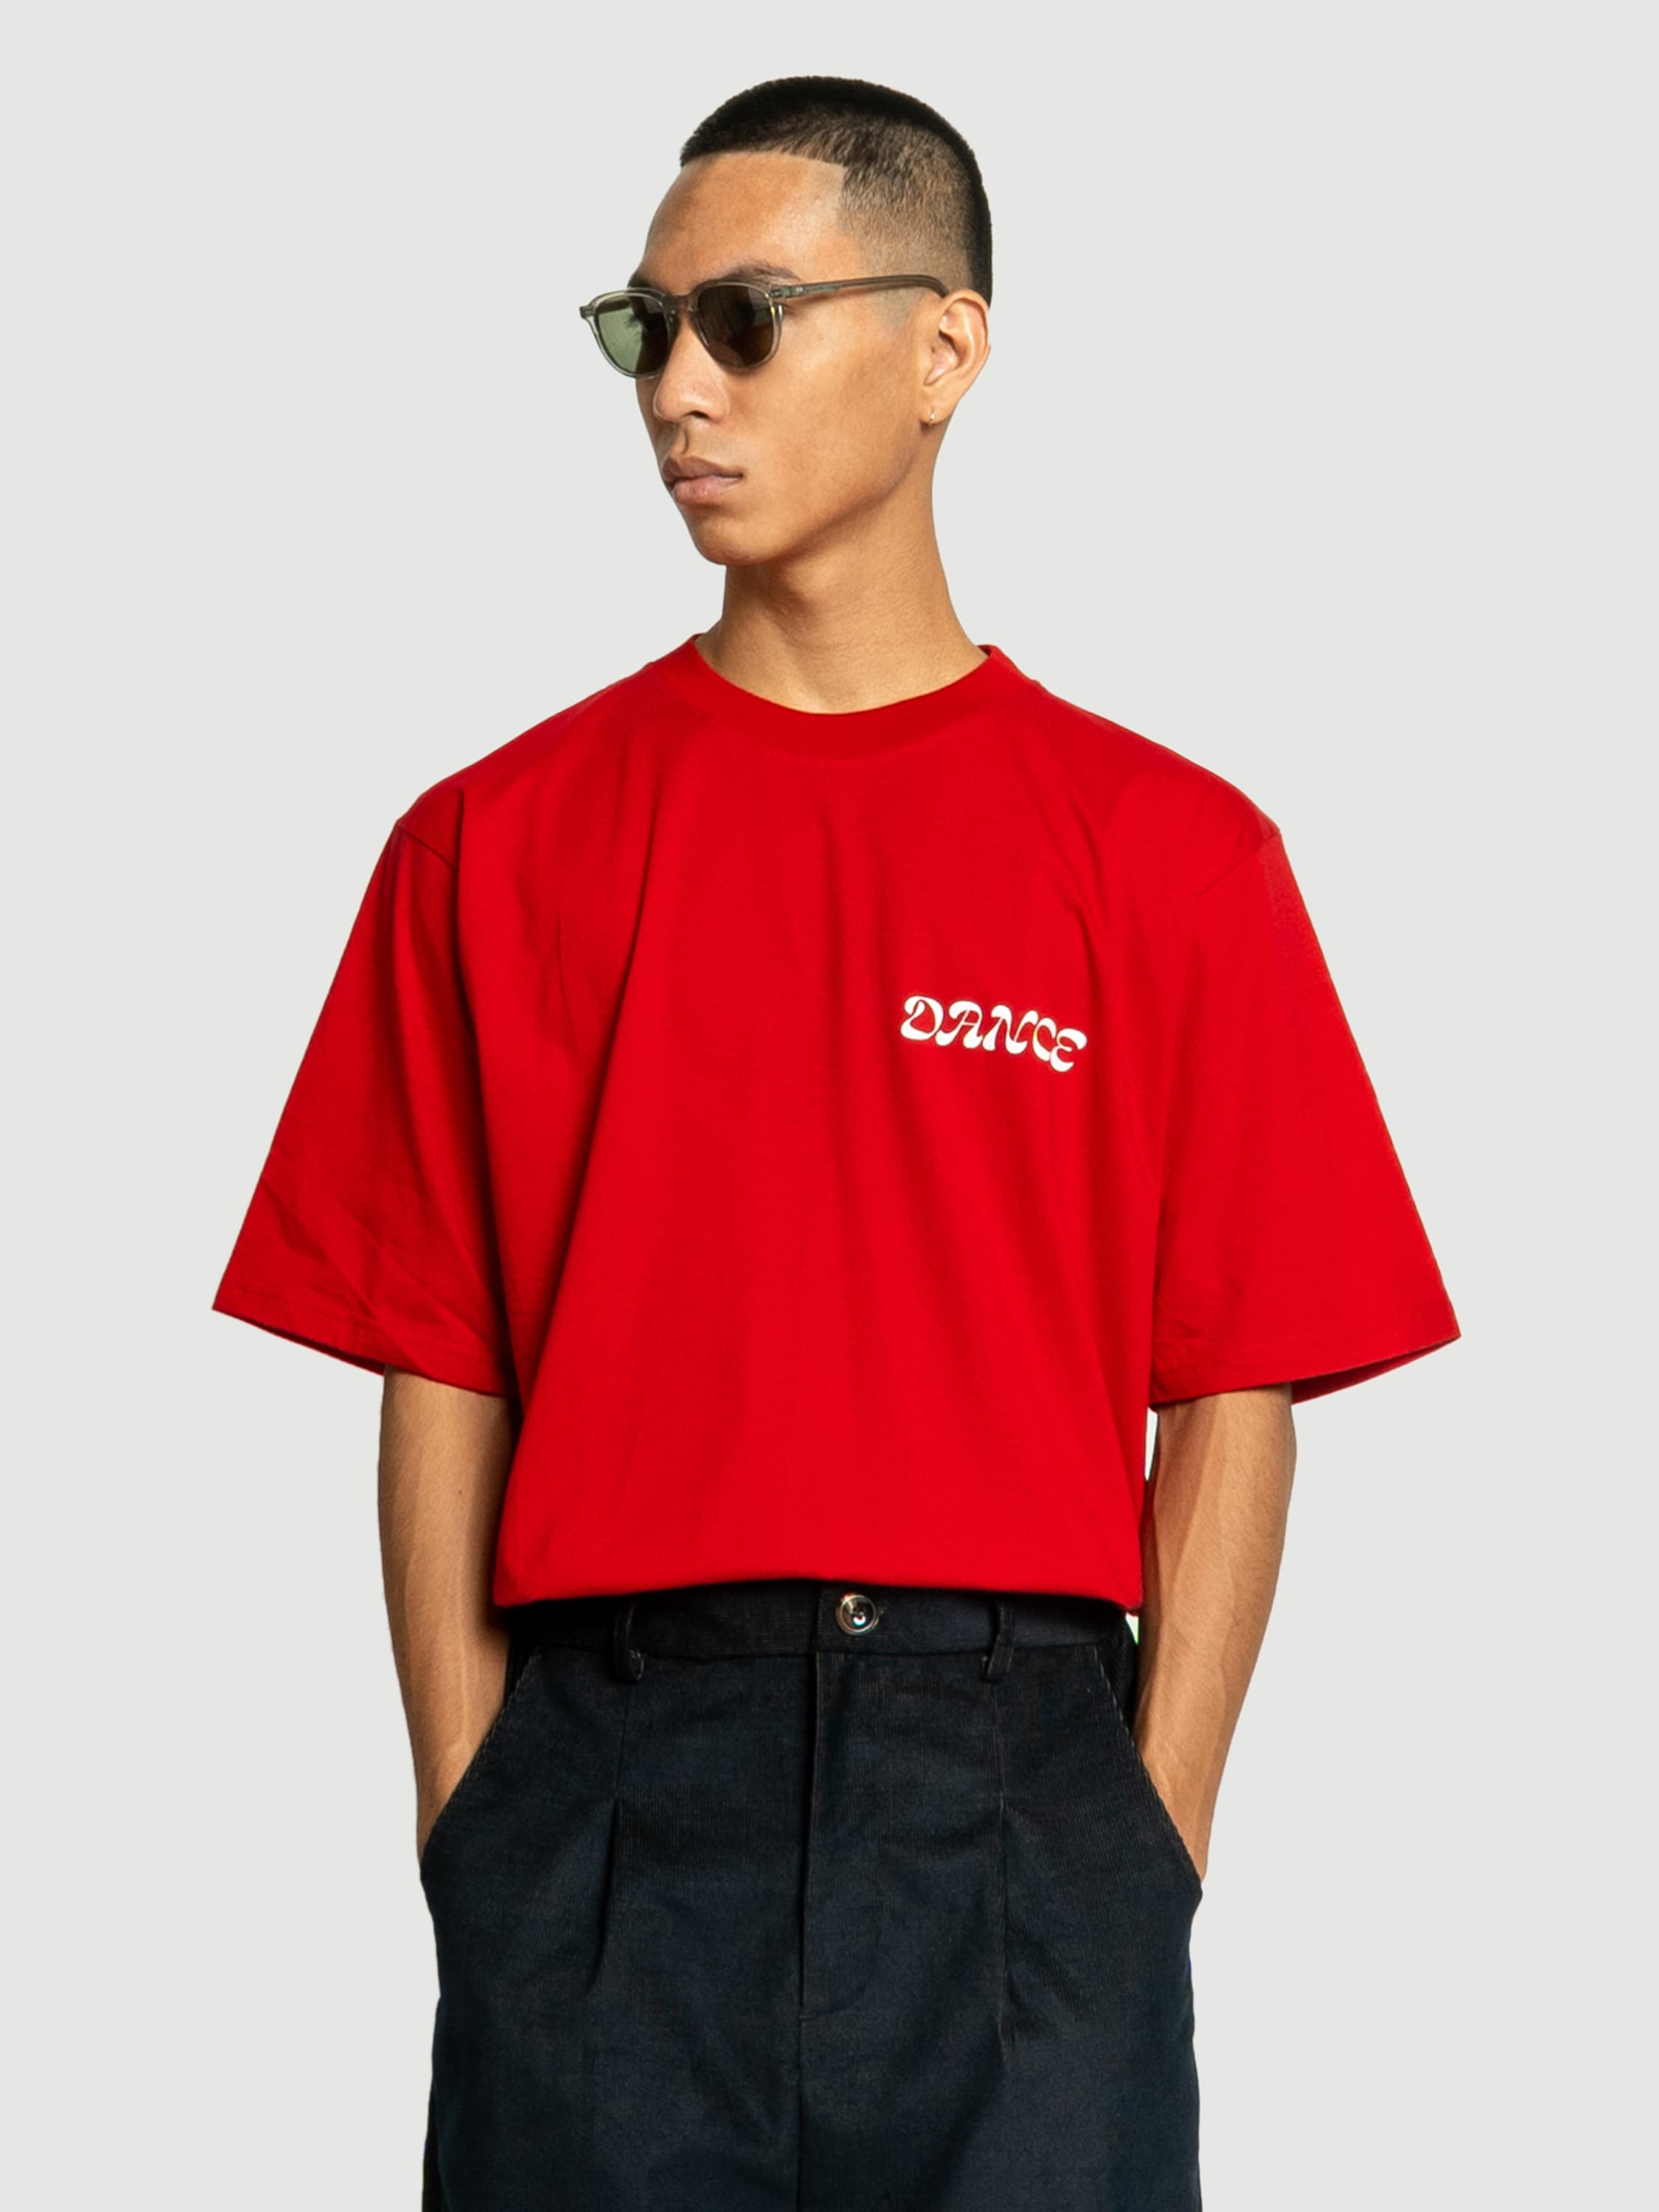 Dance Matisse Red T-shirt